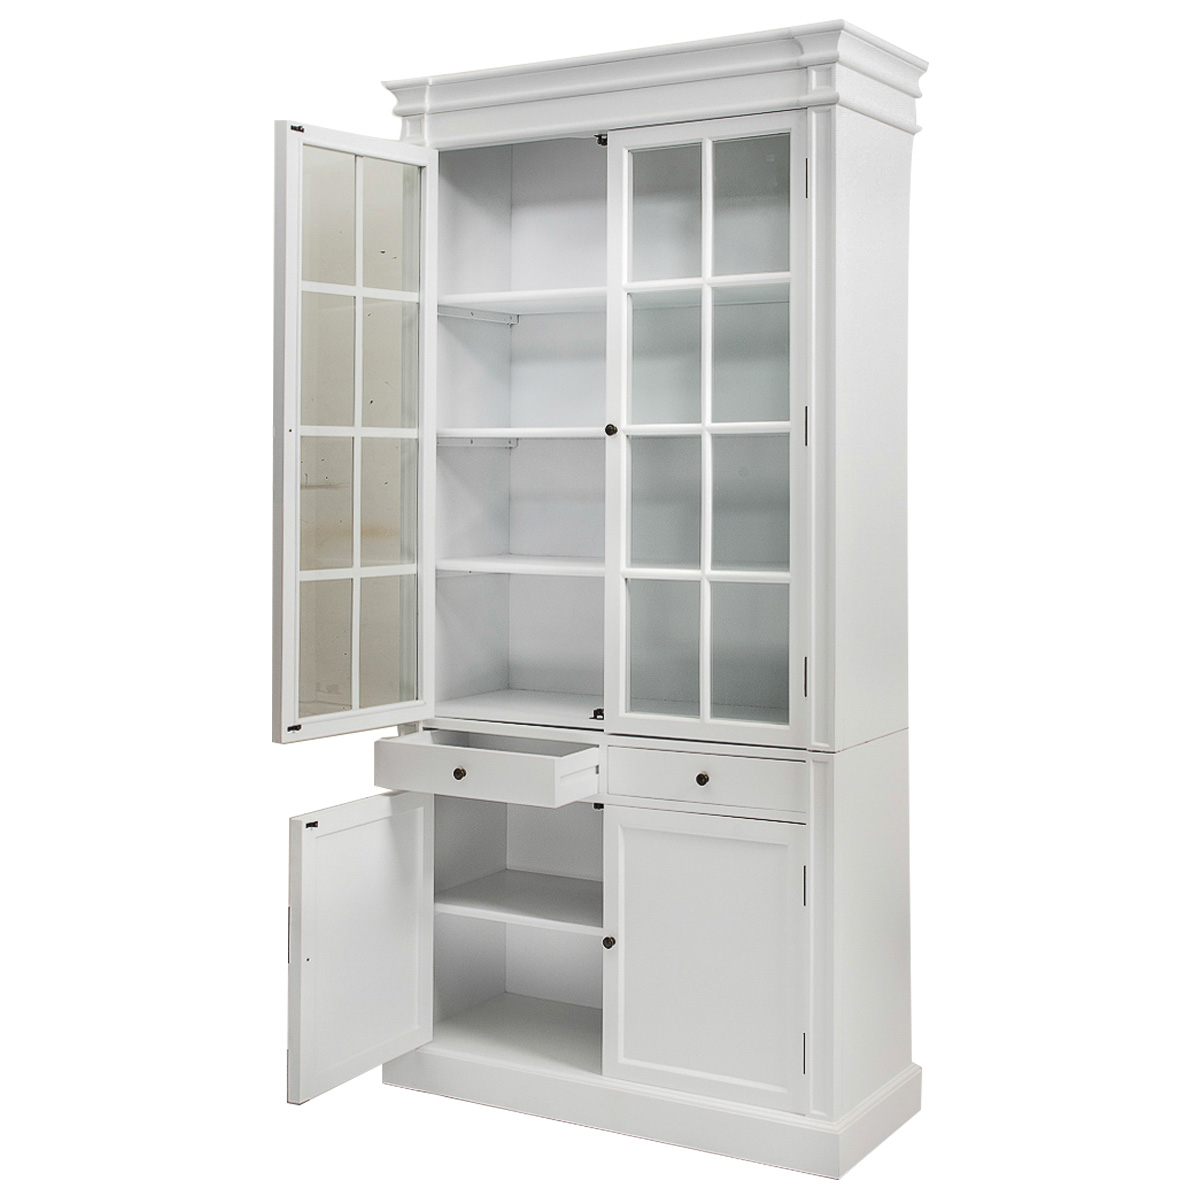 French Glass Kitchen Cabinet Doors: French Provincial Glass Door Bookcase Cabinet White